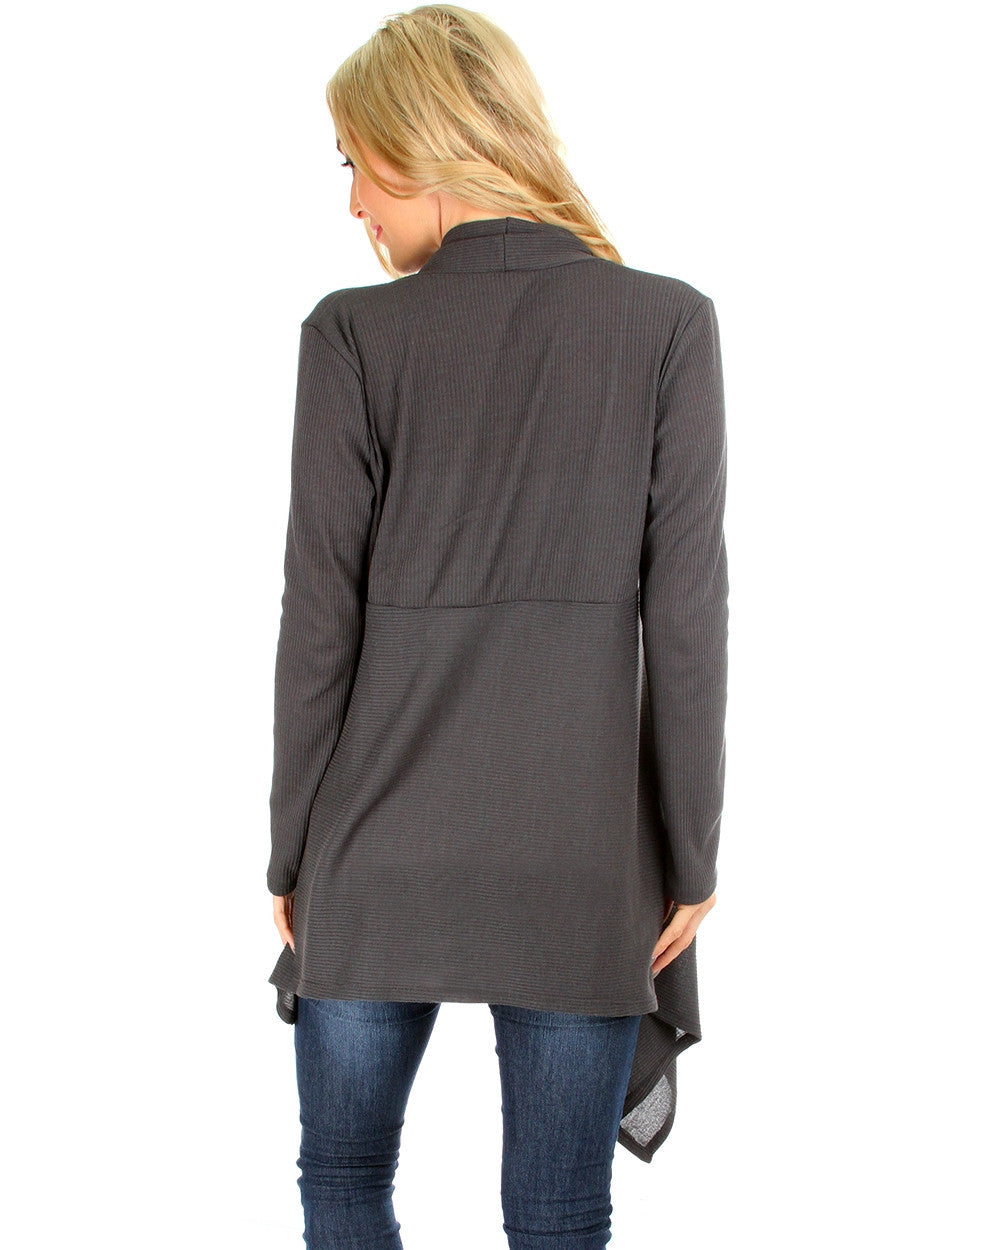 Draped Body Slimming Ribbed Cardigan In Charcoal